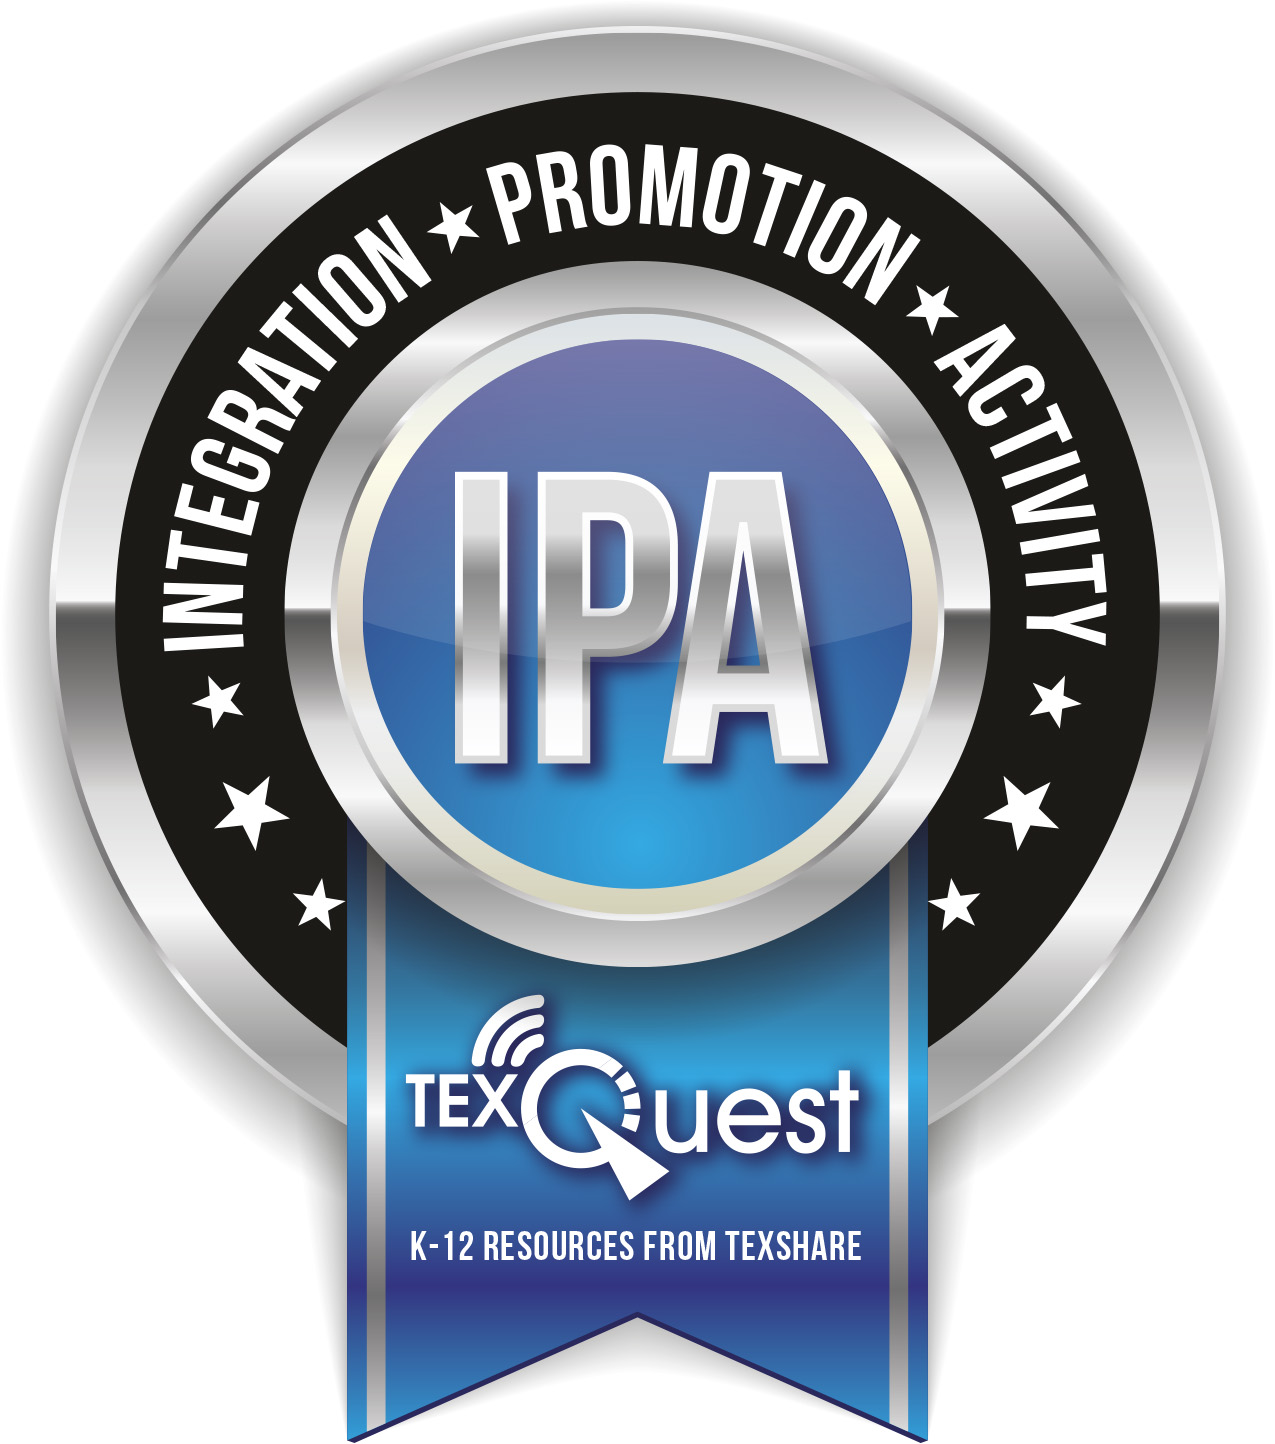 TexQuest IPA Integration and Promotion Activities icon